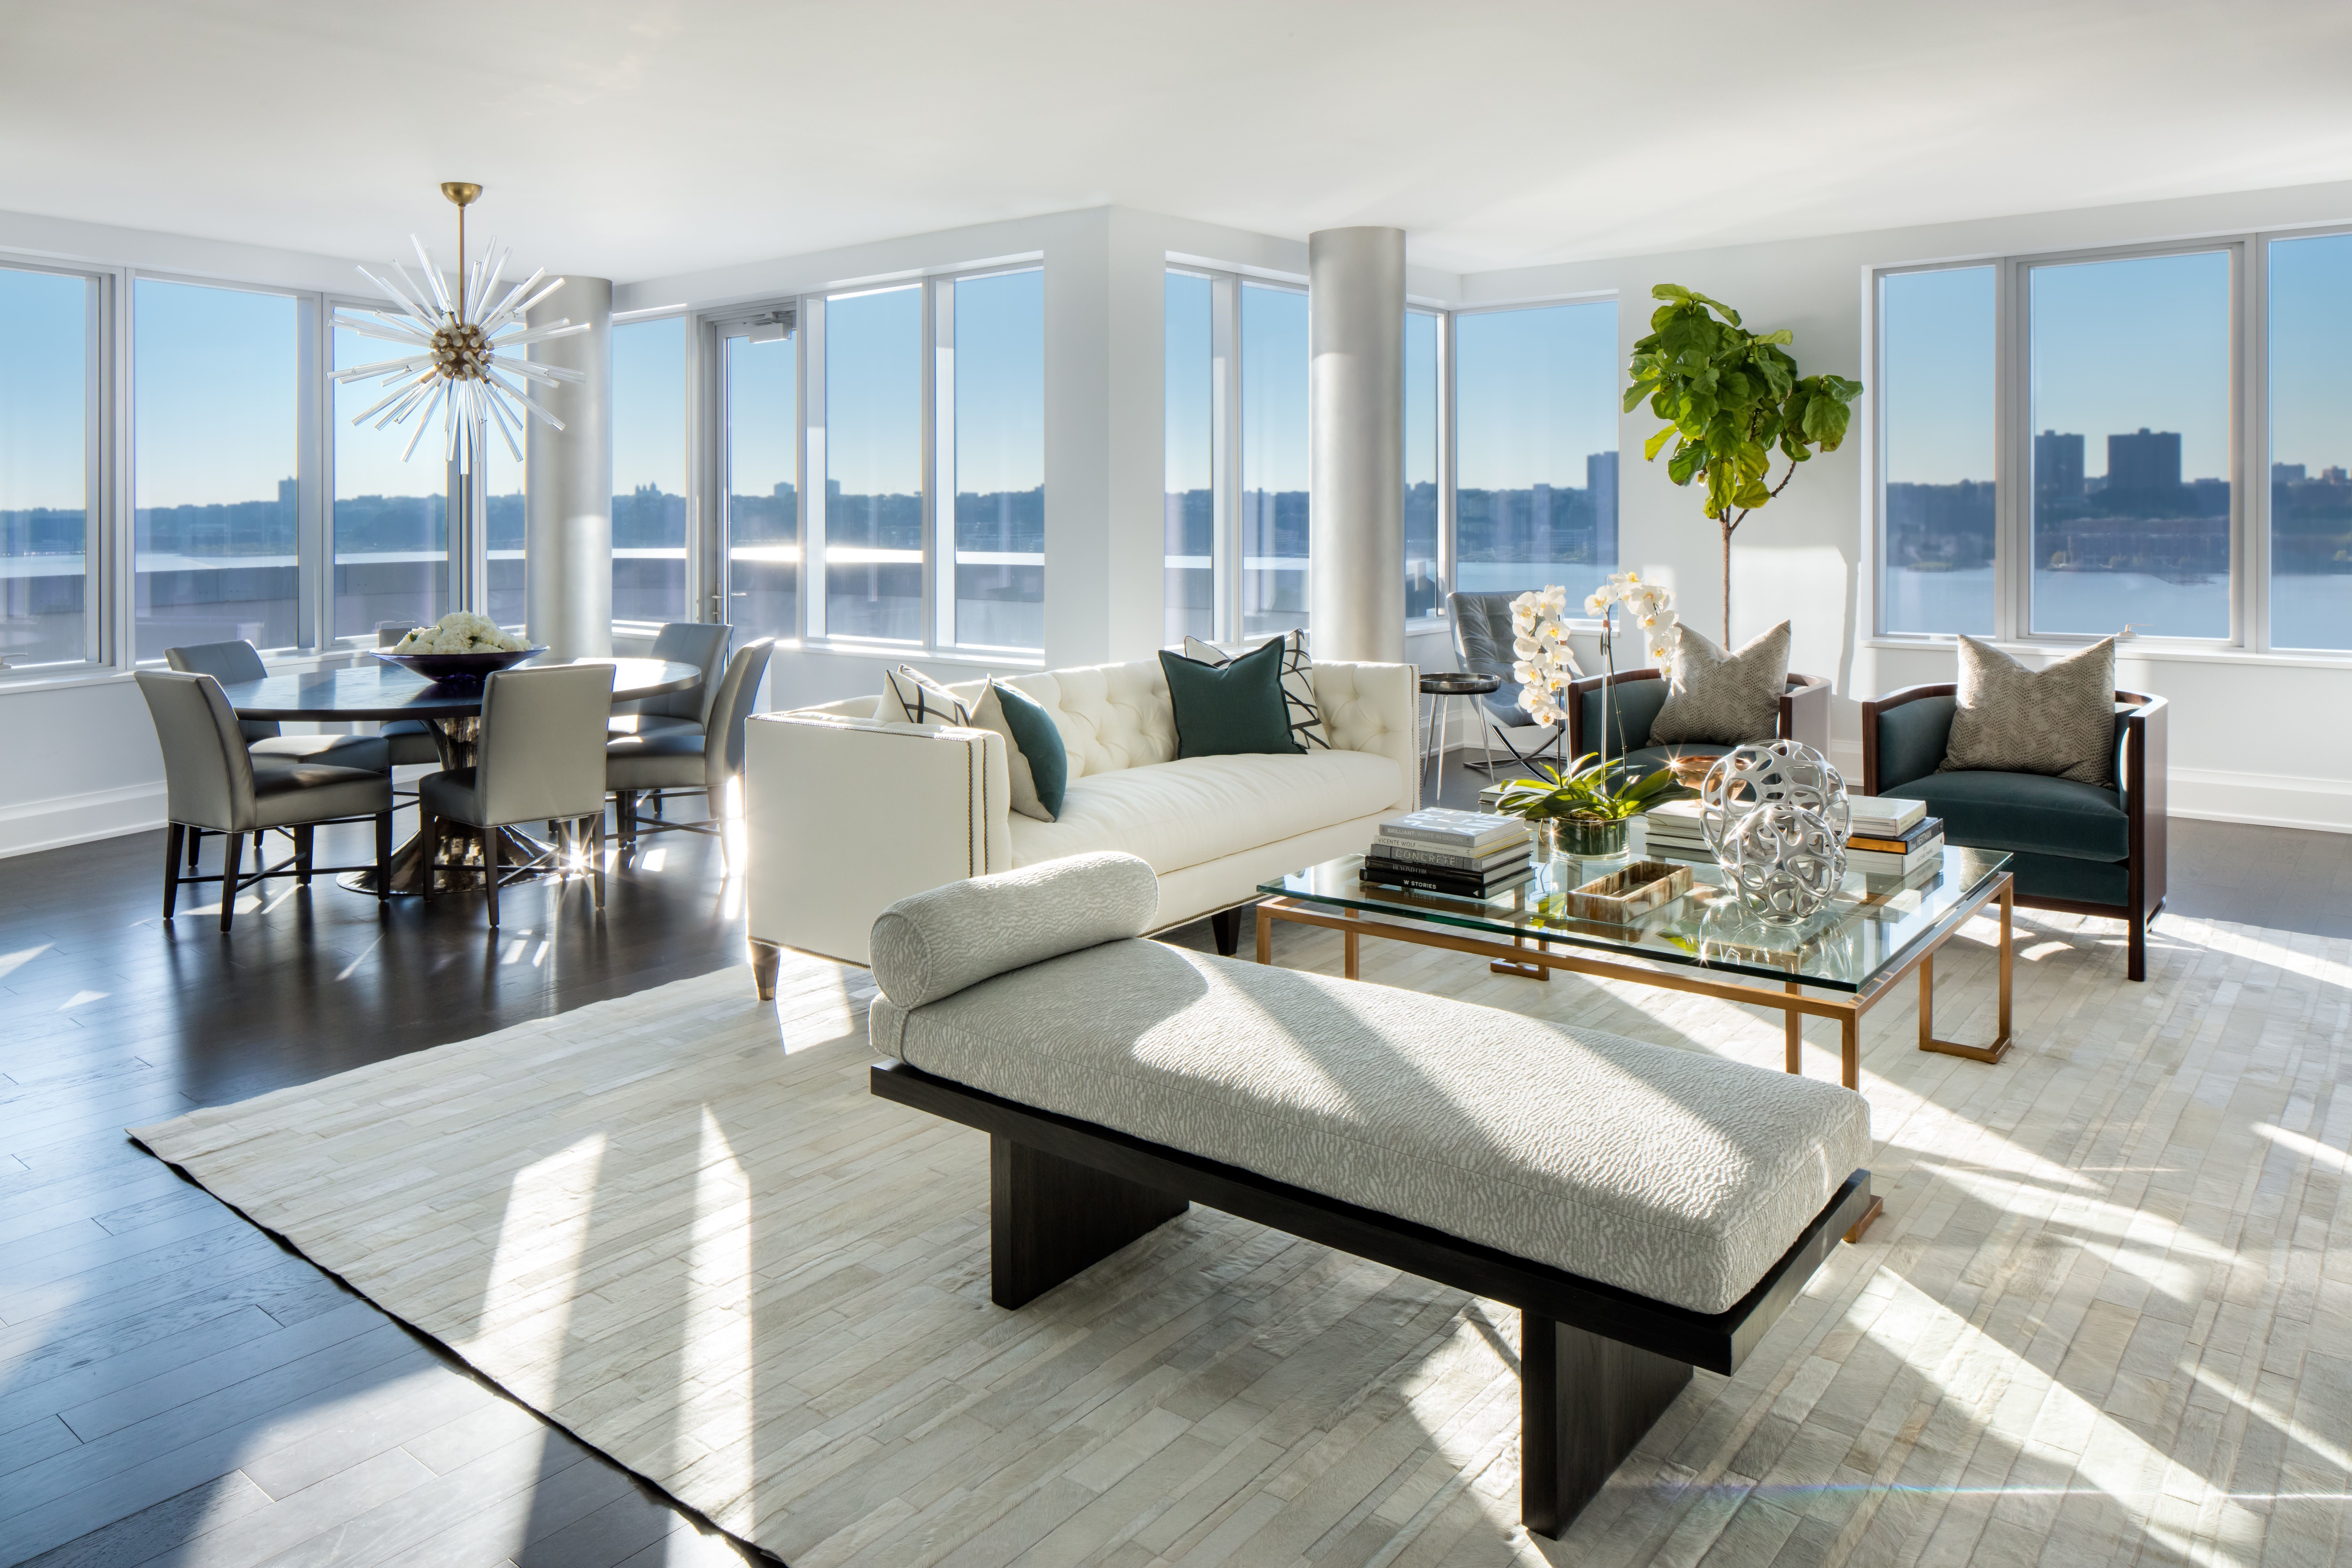 architectural digest furniture. NYC High Rise Luxury Condo With Swimming Pool | Architectural Digest Furniture